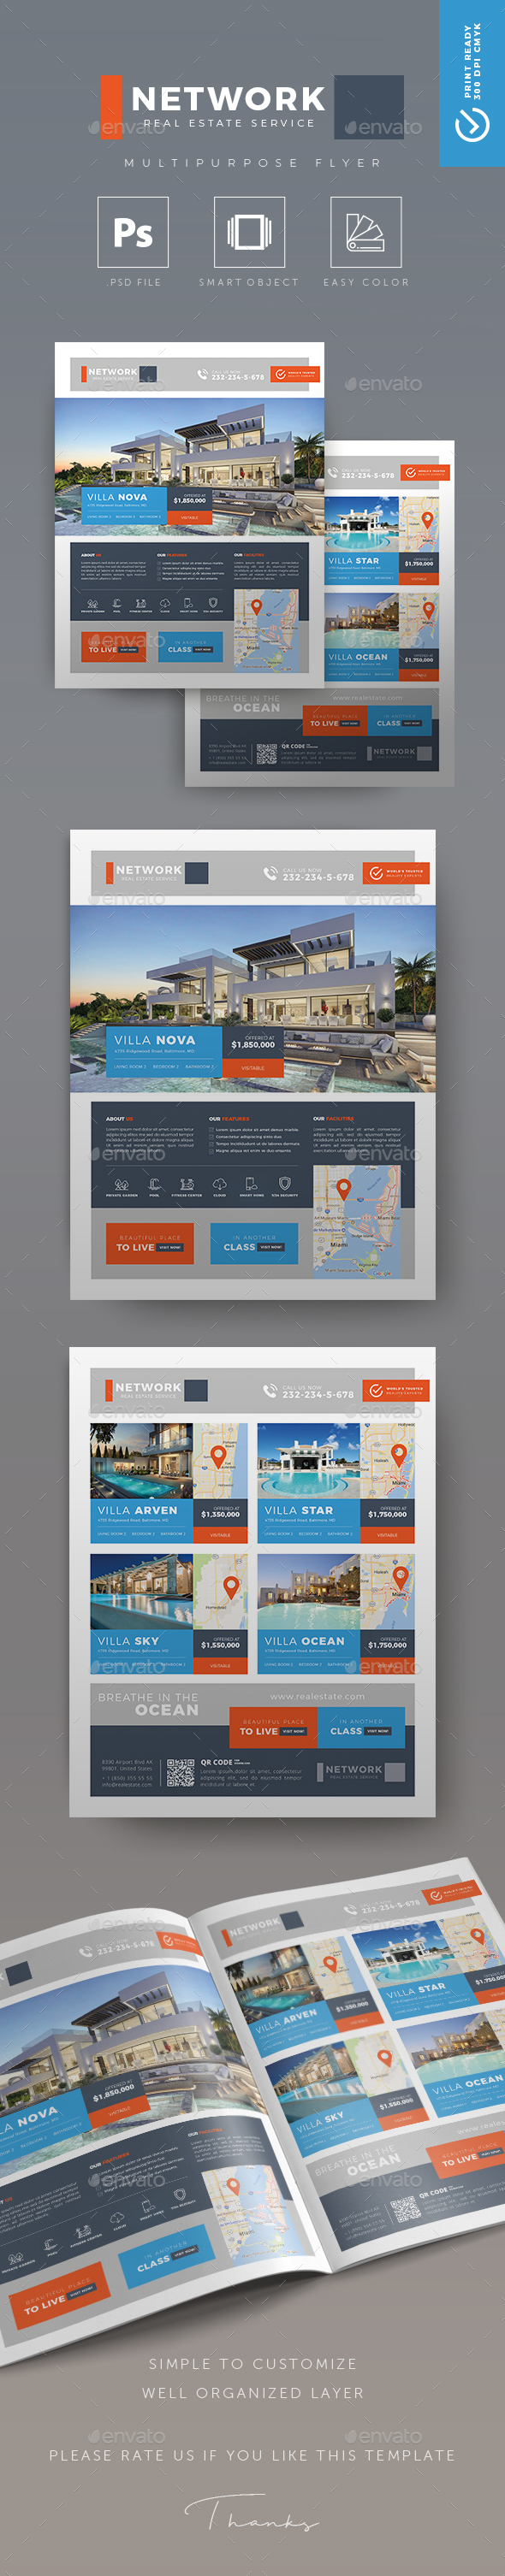 Network - Creative Real Estate Flyer - Commerce Flyers